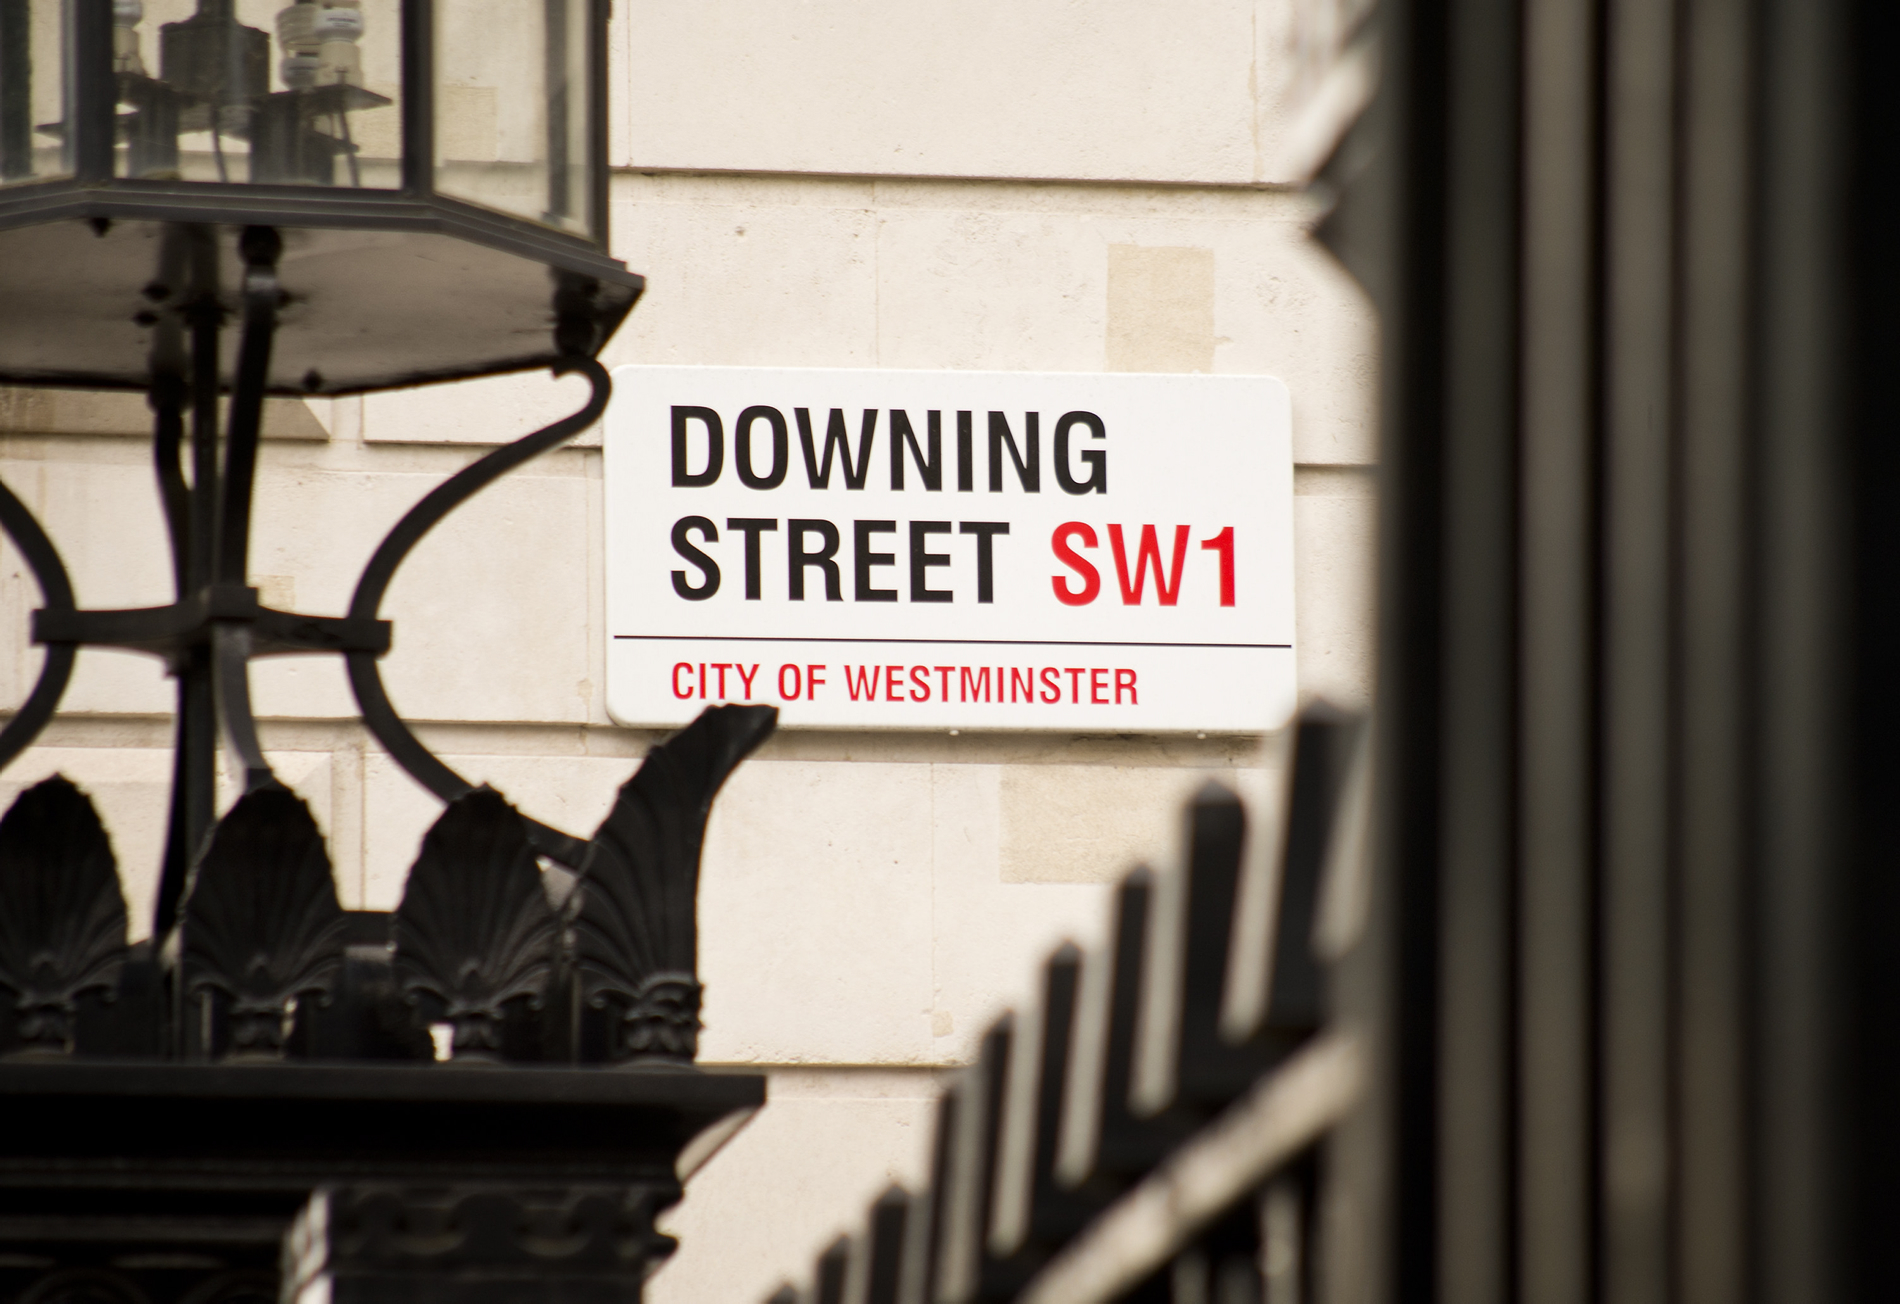 Operation Temperer is Downing Street's plan to curb terrorism in the City of Westminster.